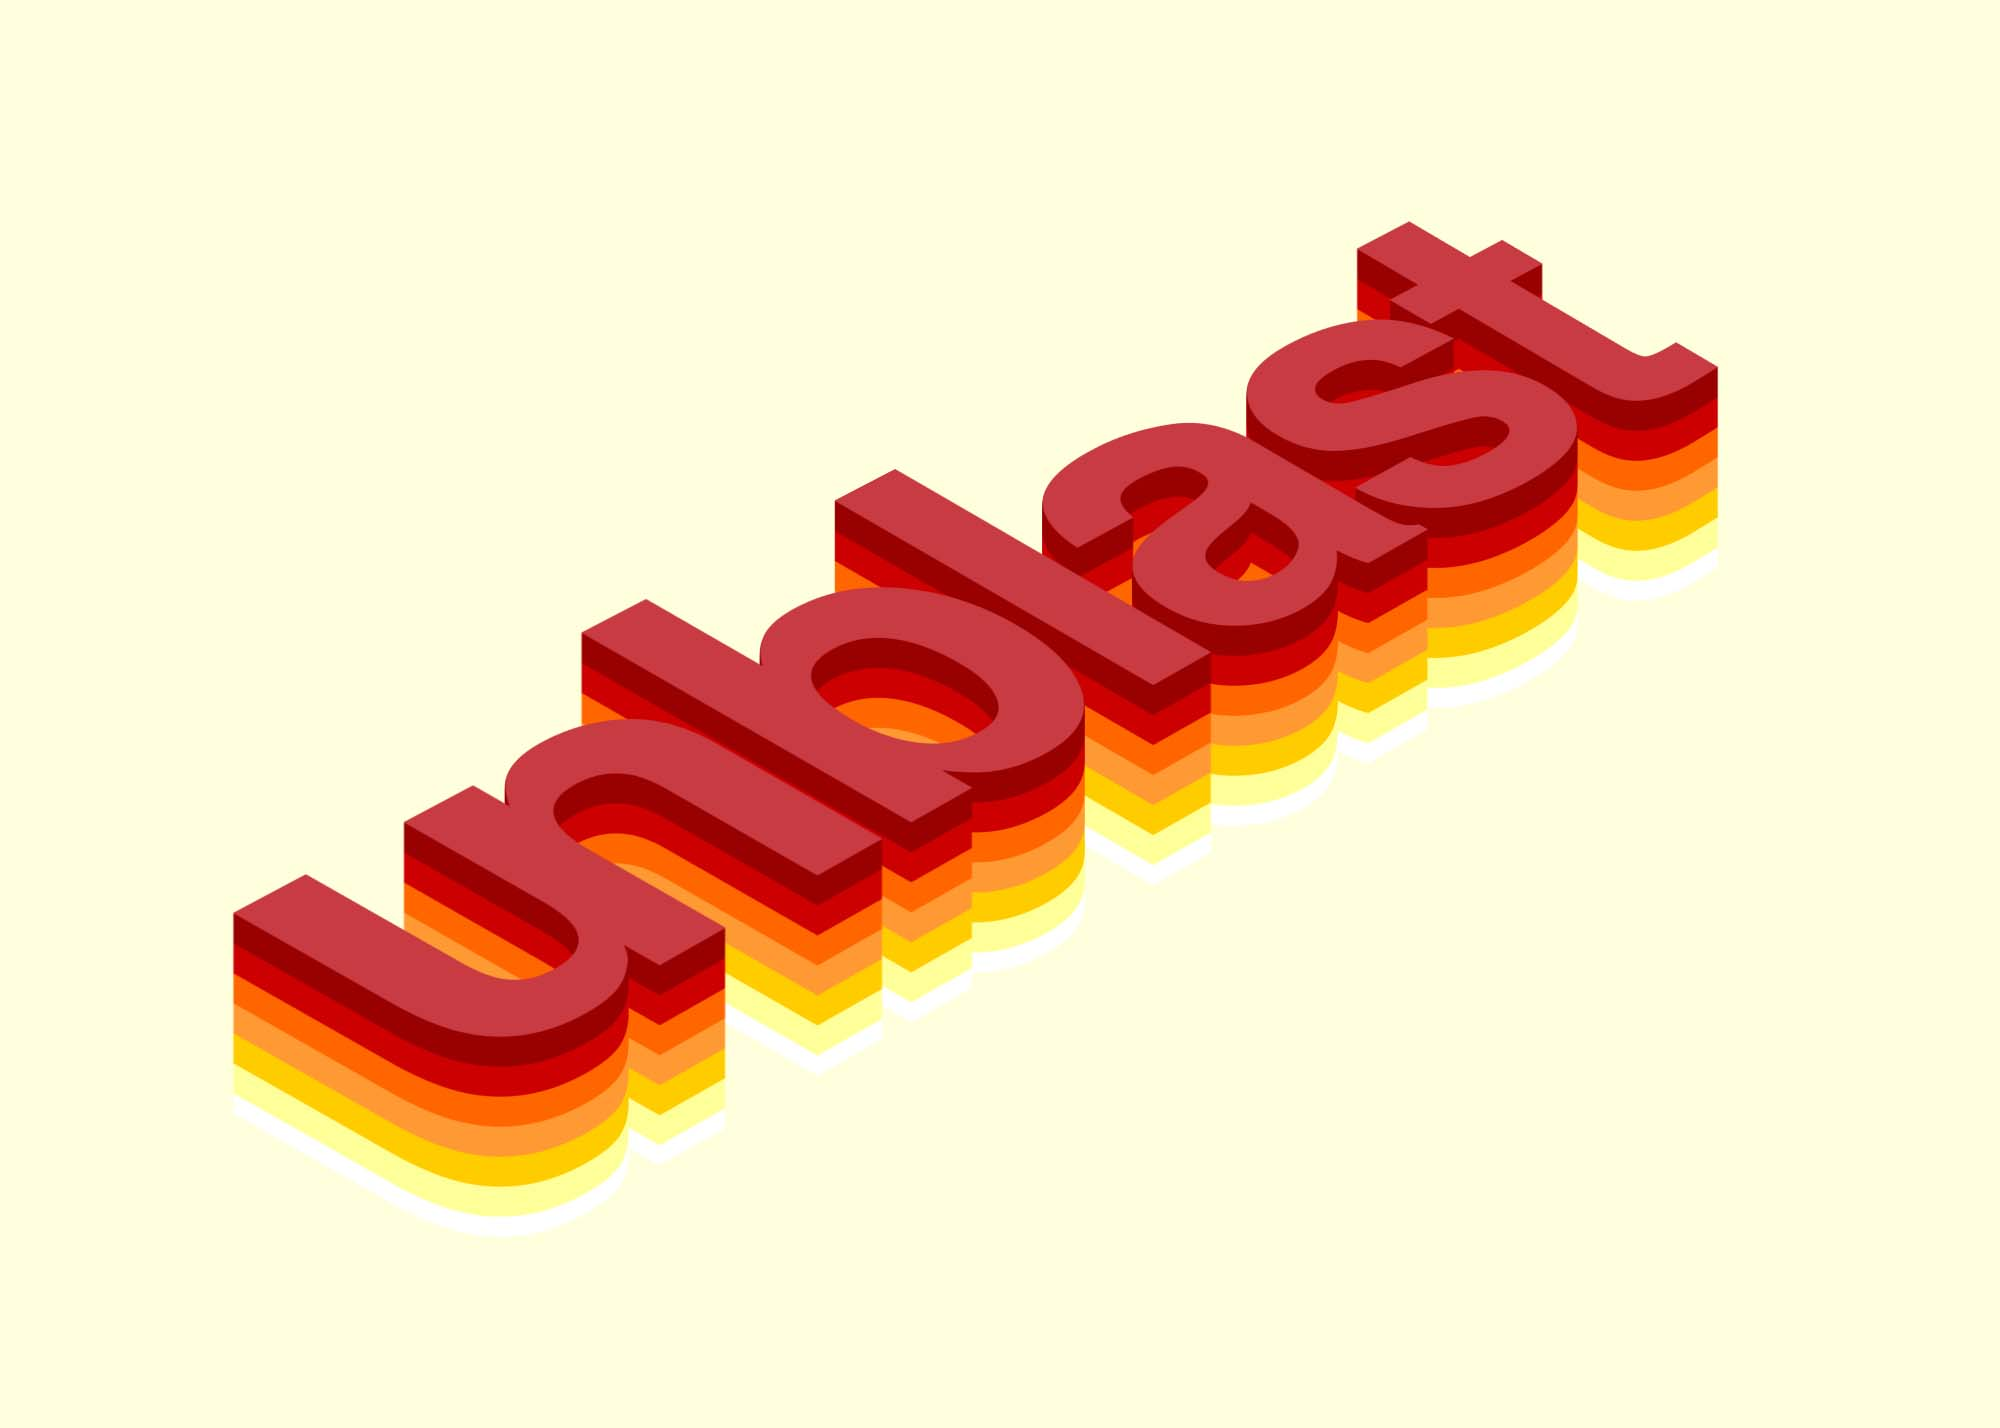 Isometric Colorful 3D Text Effect